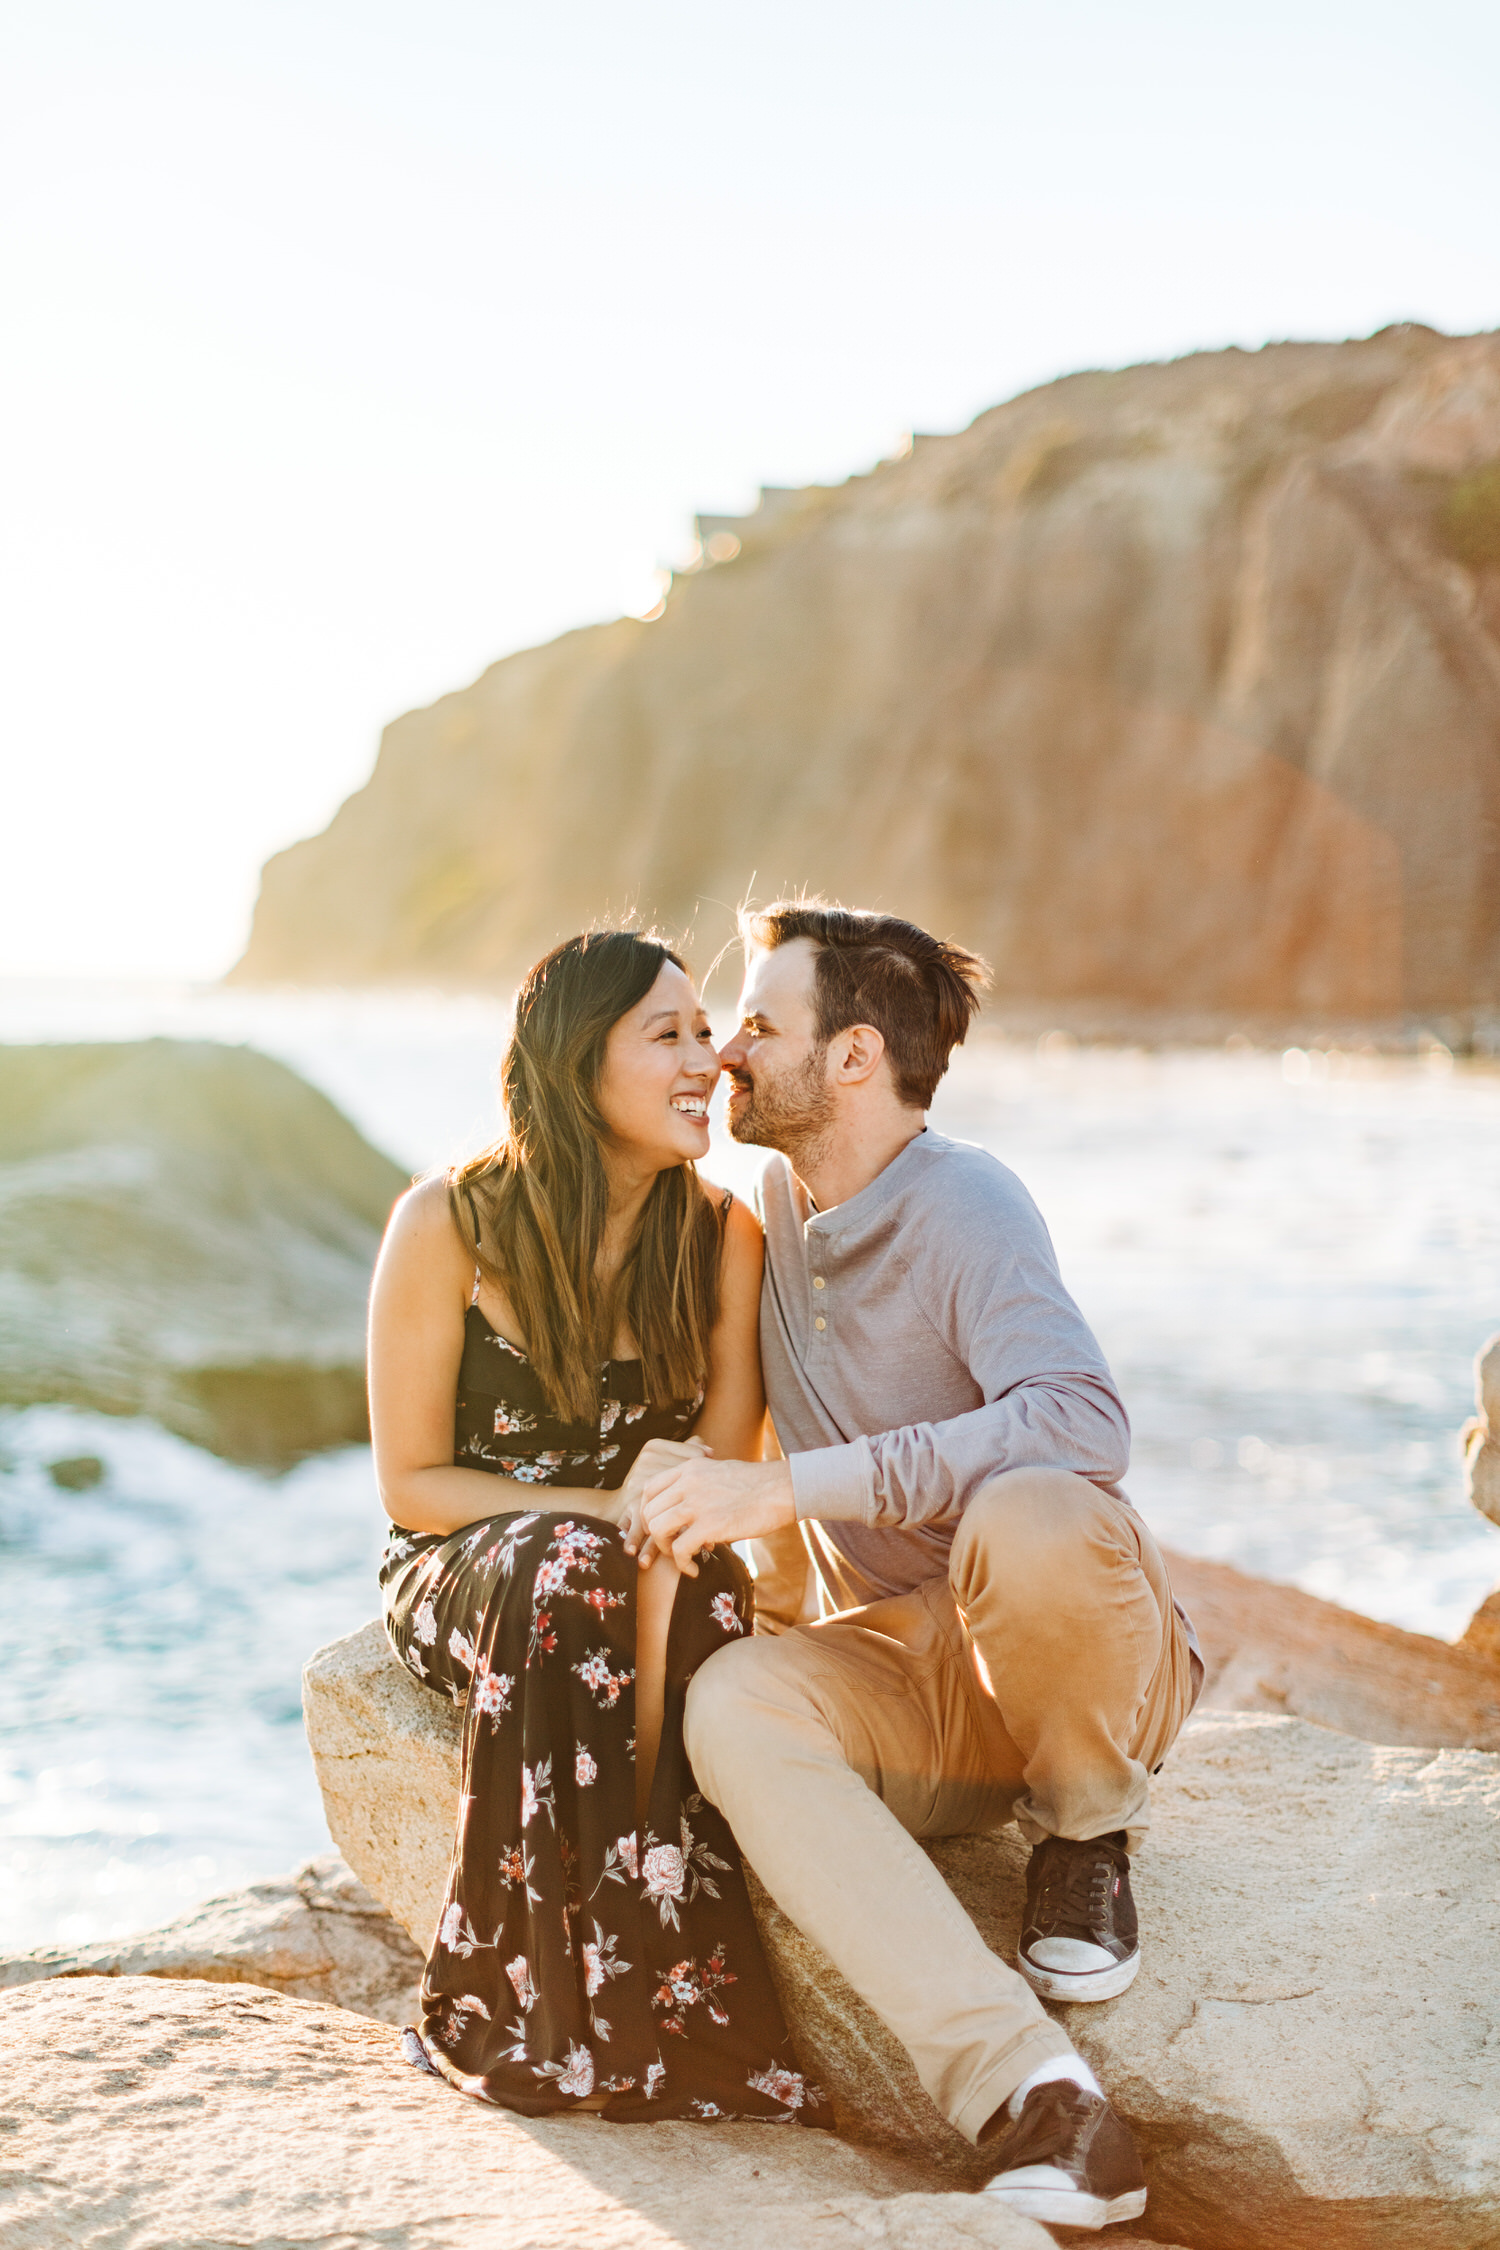 Angelina&Neal-Edits_888-1-Clarisse-Rae-Southern-California-Wedding-Photographer-Orange-county-Engagement-Photos.jpg